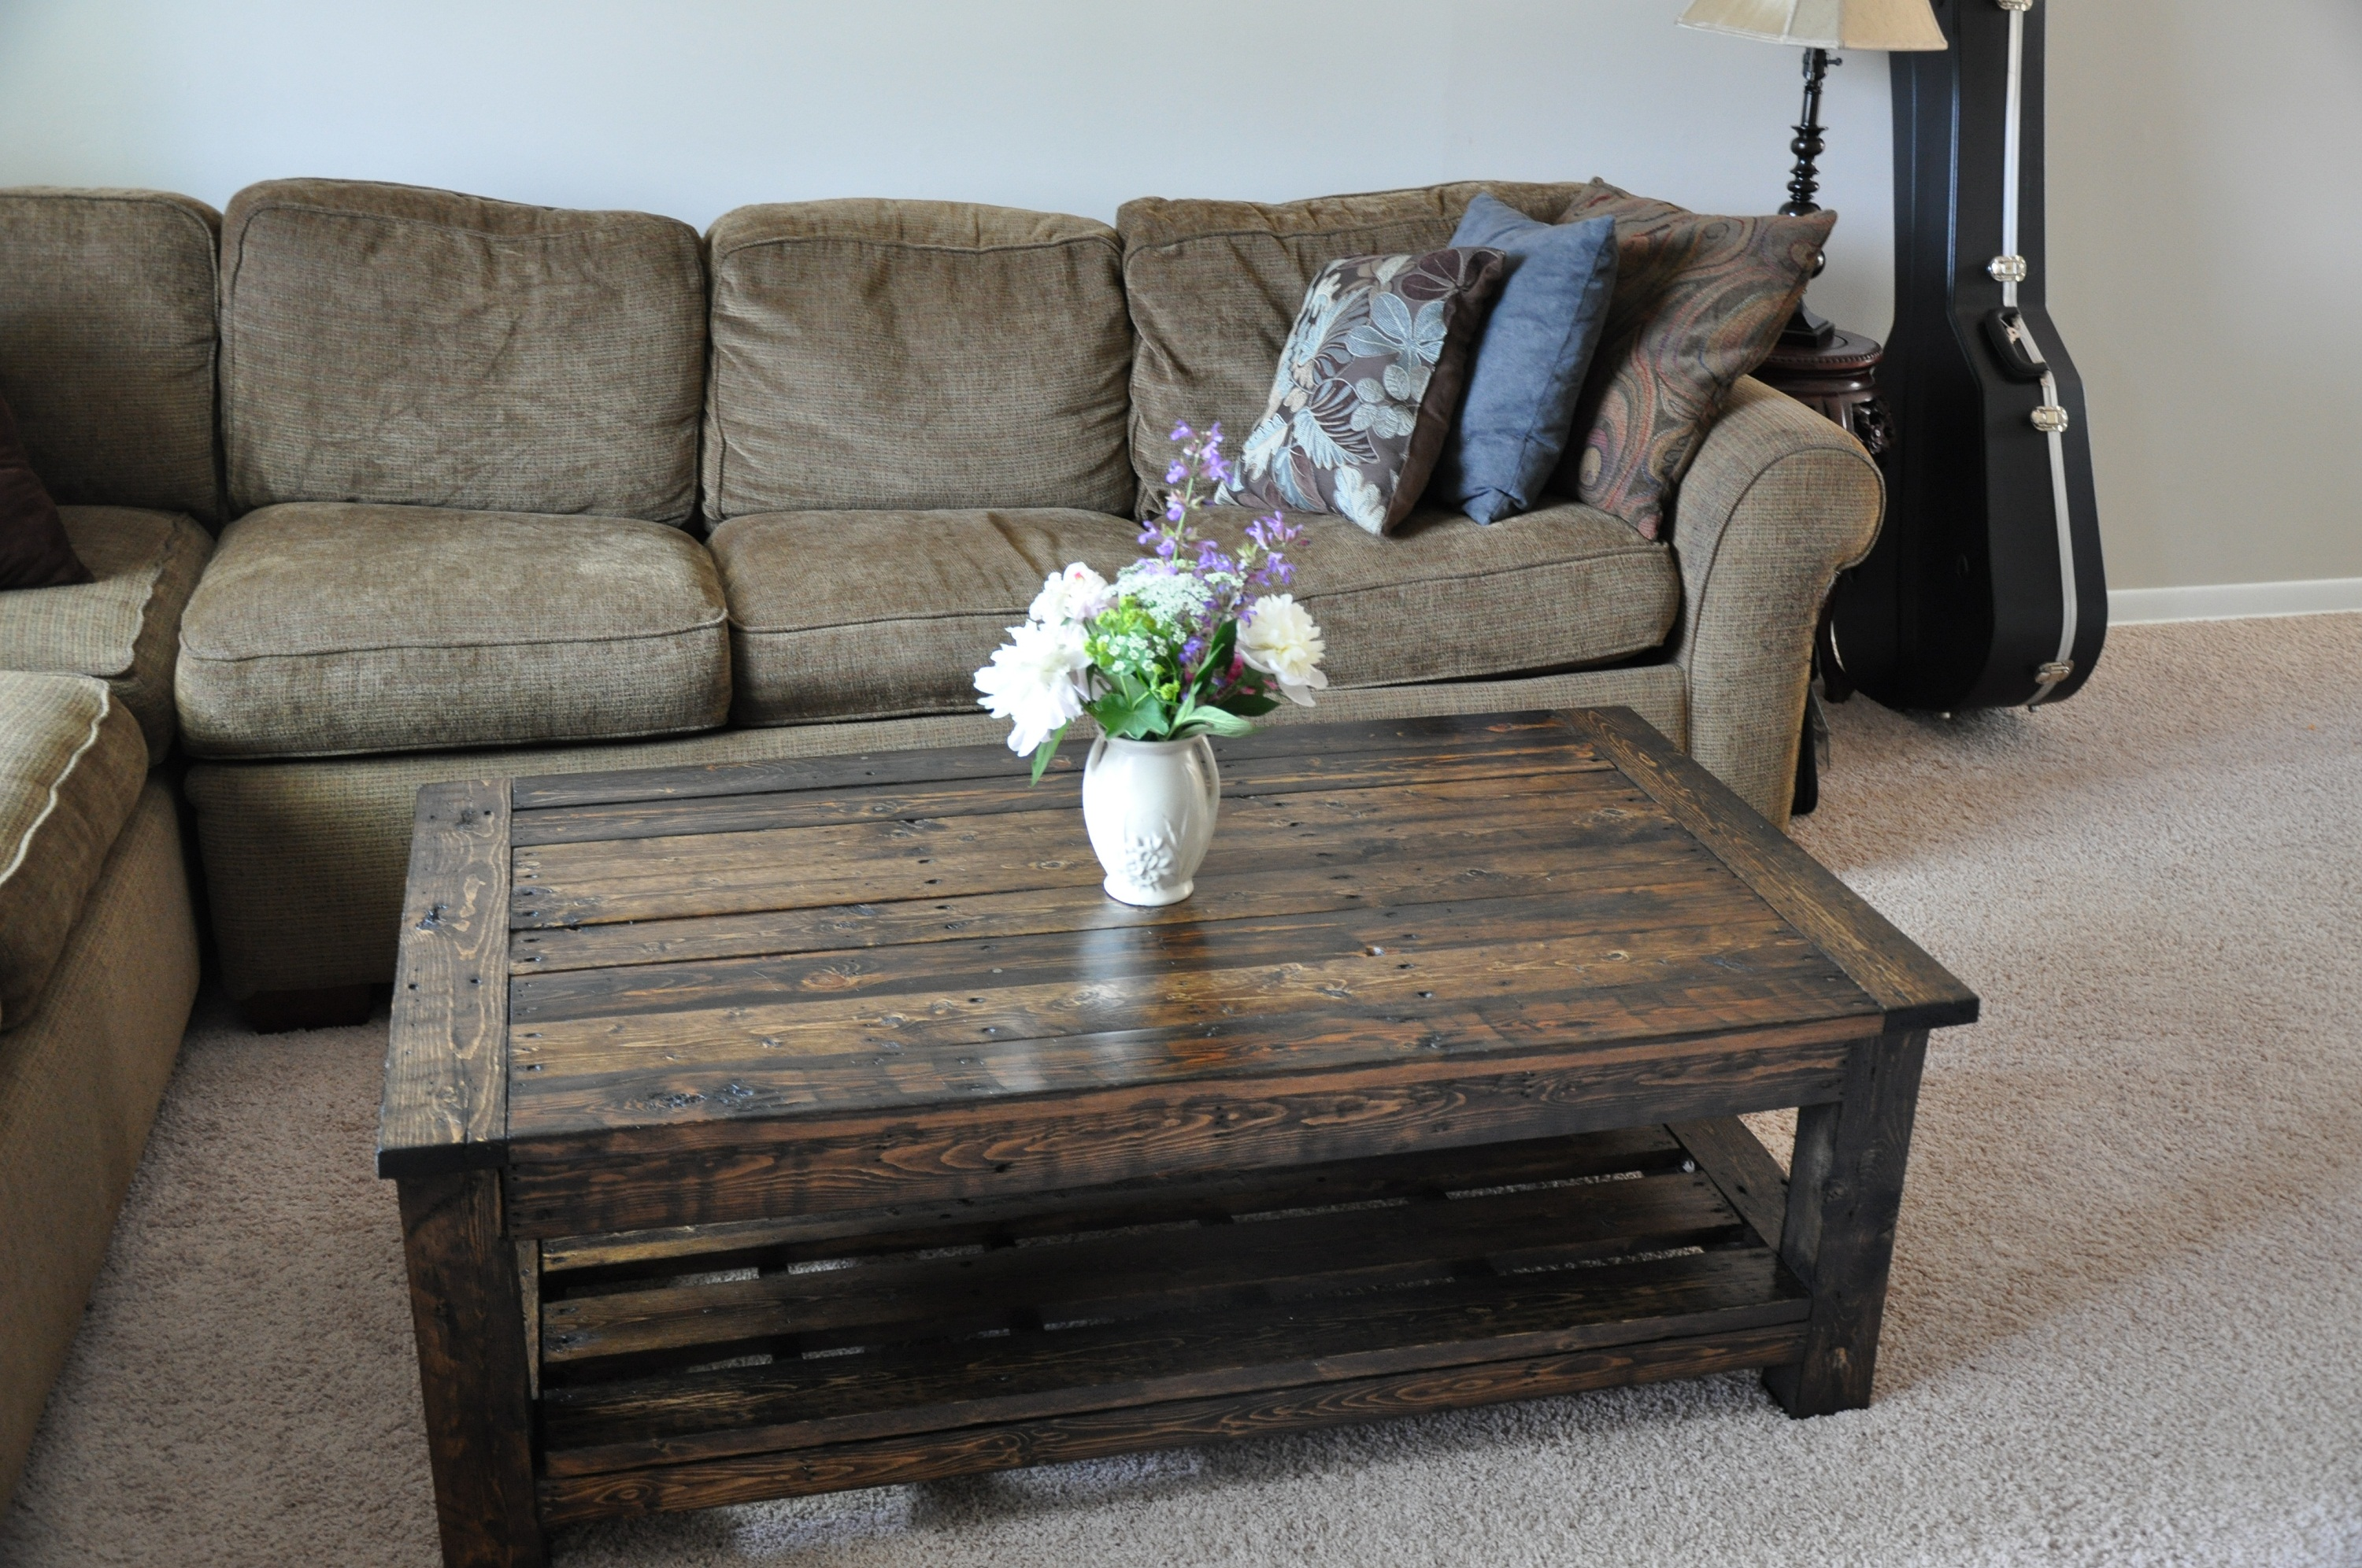 Pallet furniture coffee table -